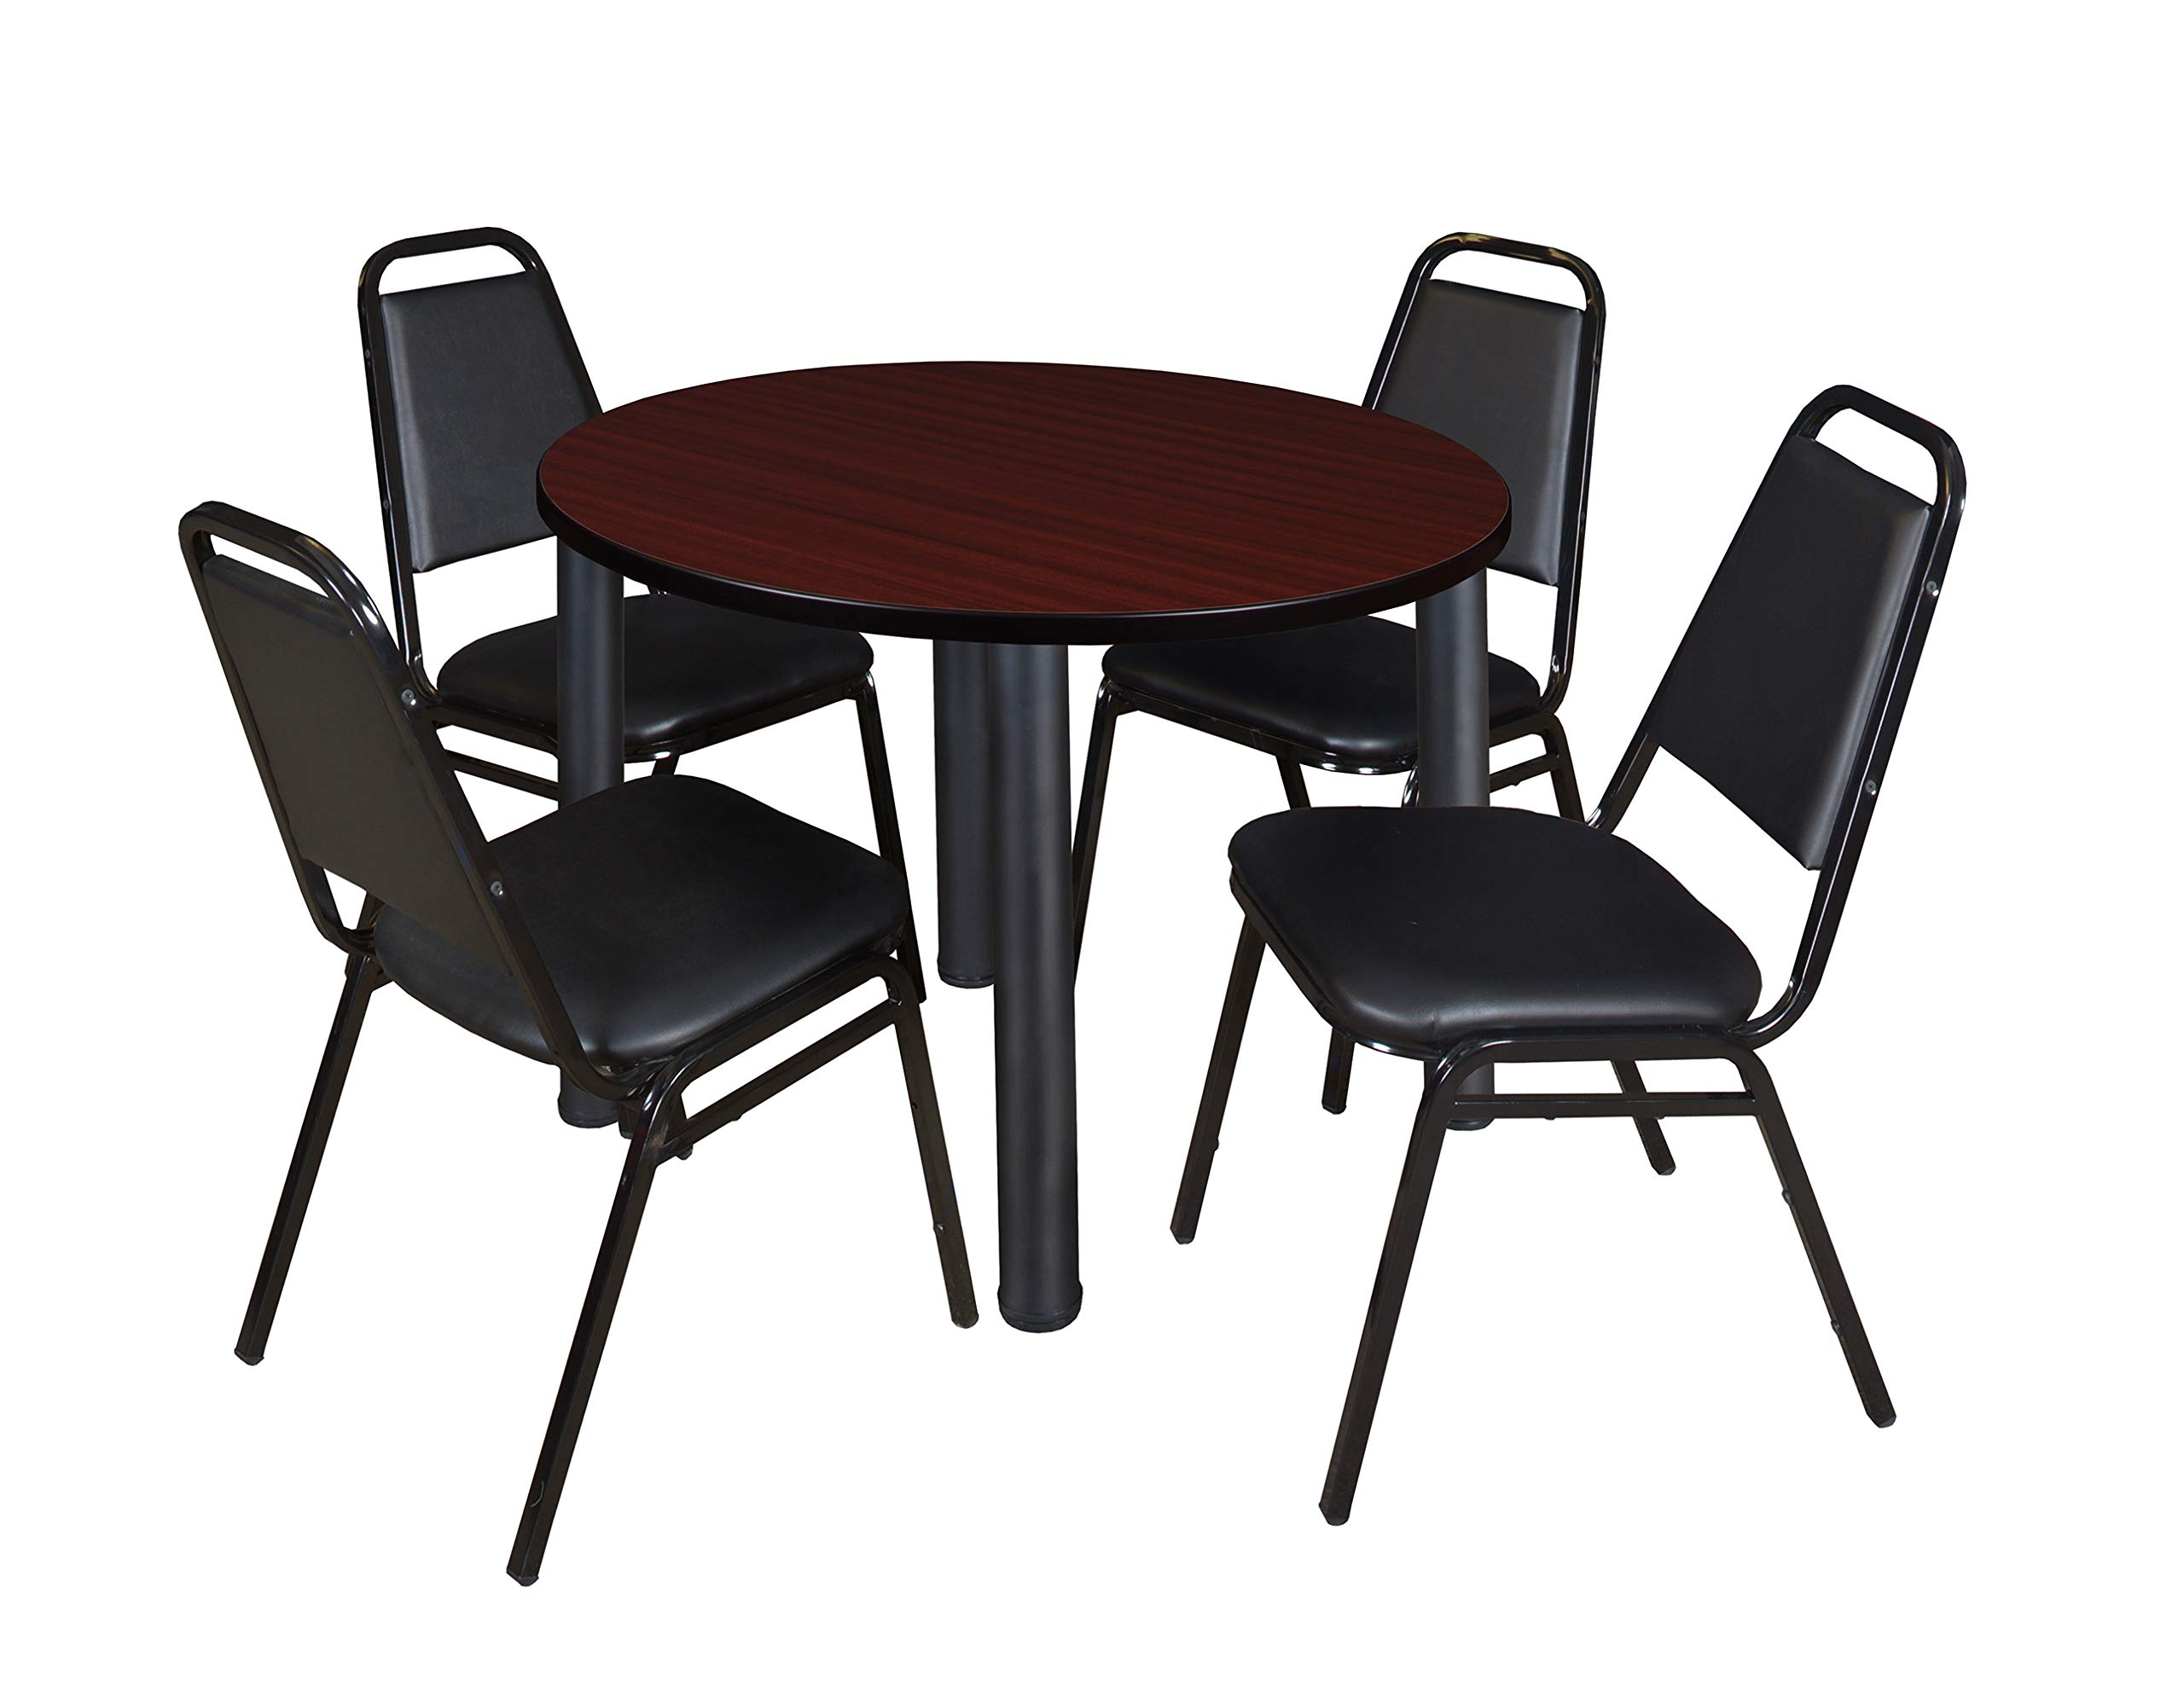 Kee 42'' Round Breakroom Table- Mahogany/ Black & 4 Restaurant Stack Chairs- Black by Regency